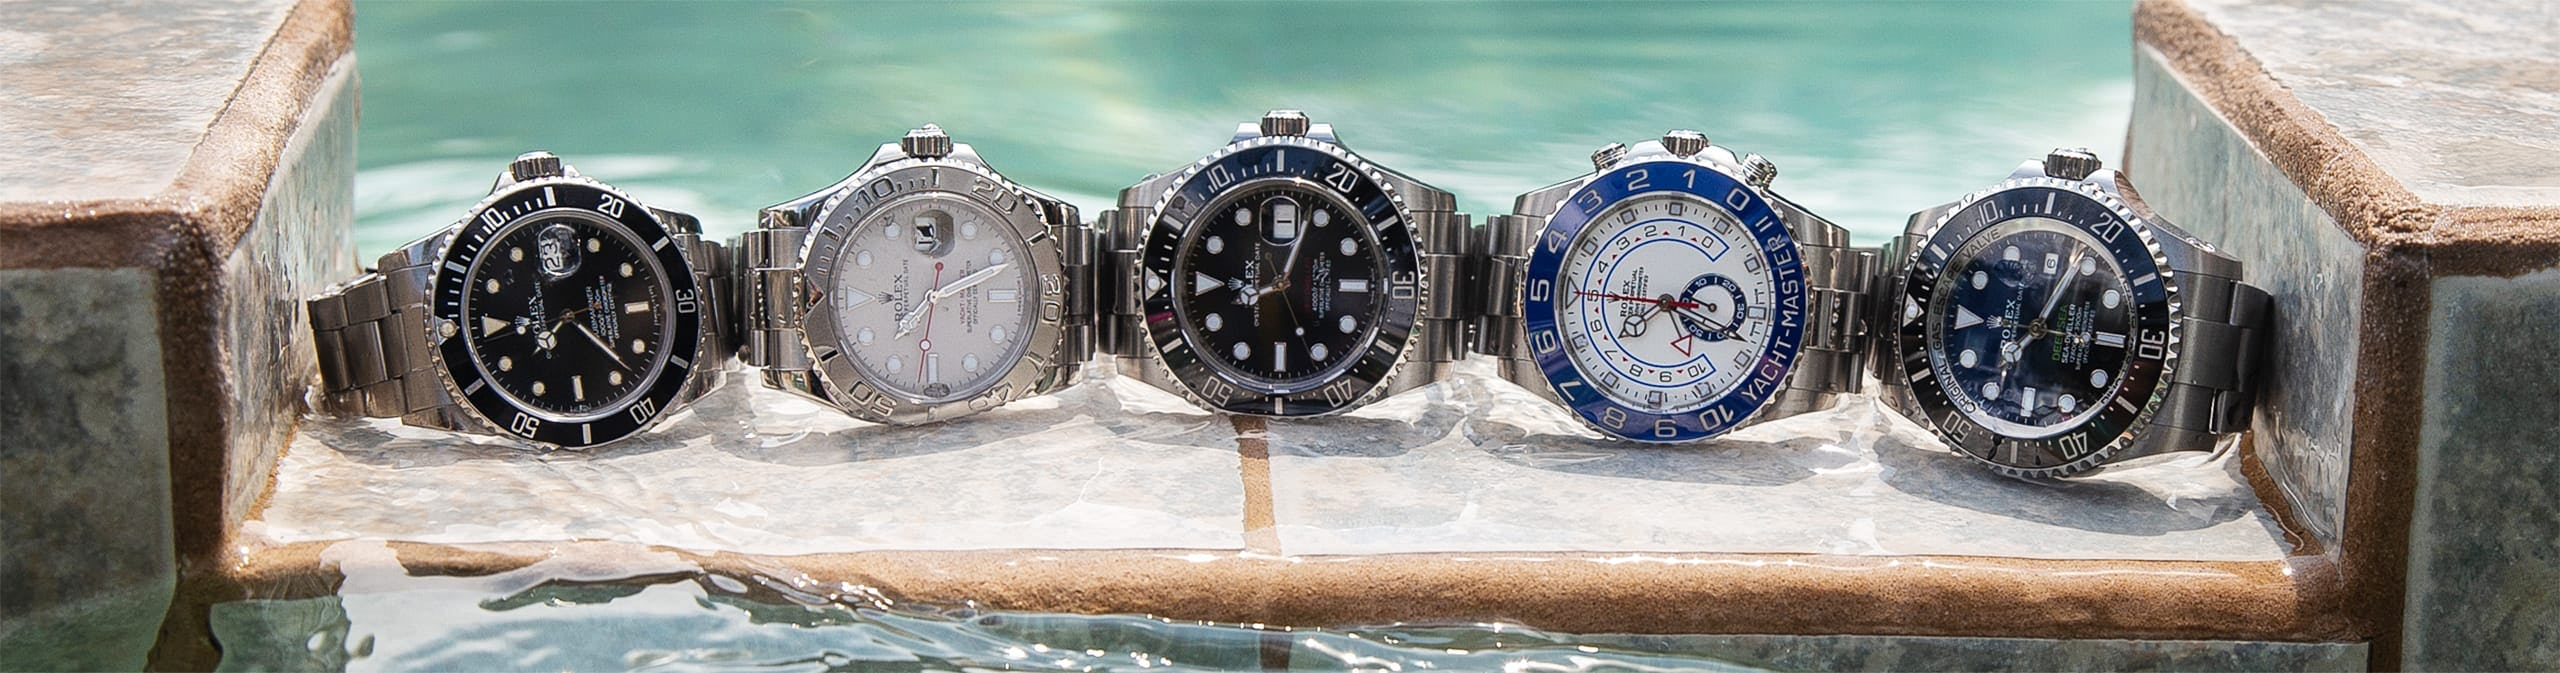 Rolex Dive Watches: Robust Tool Watches For Any Activity